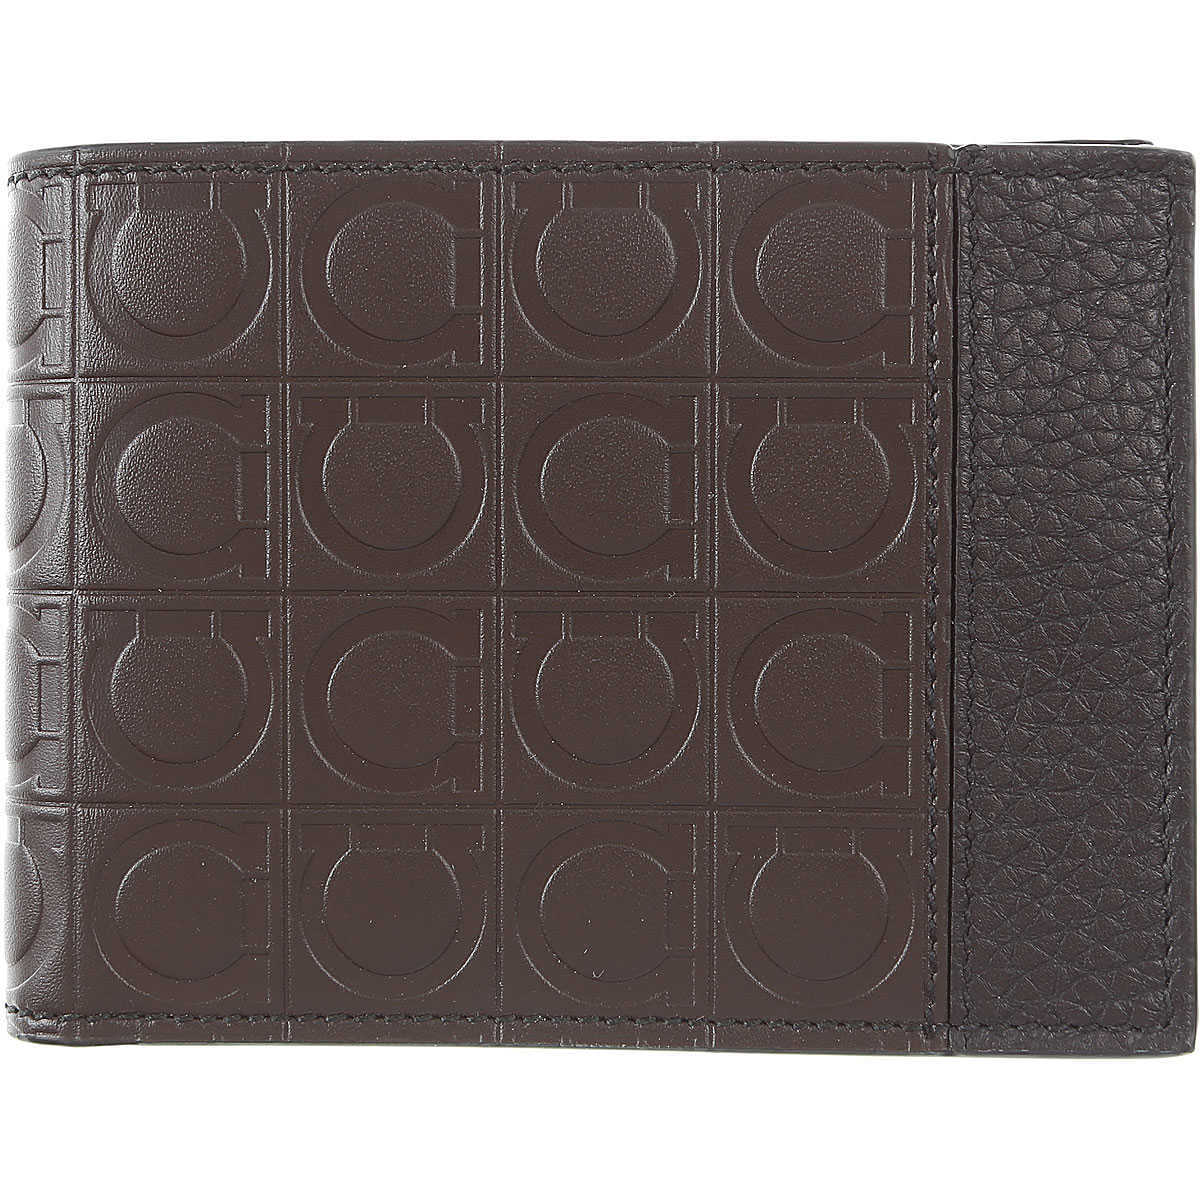 Salvatore Ferragamo Wallet for Men On Sale Brown DK - GOOFASH - Mens WALLETS